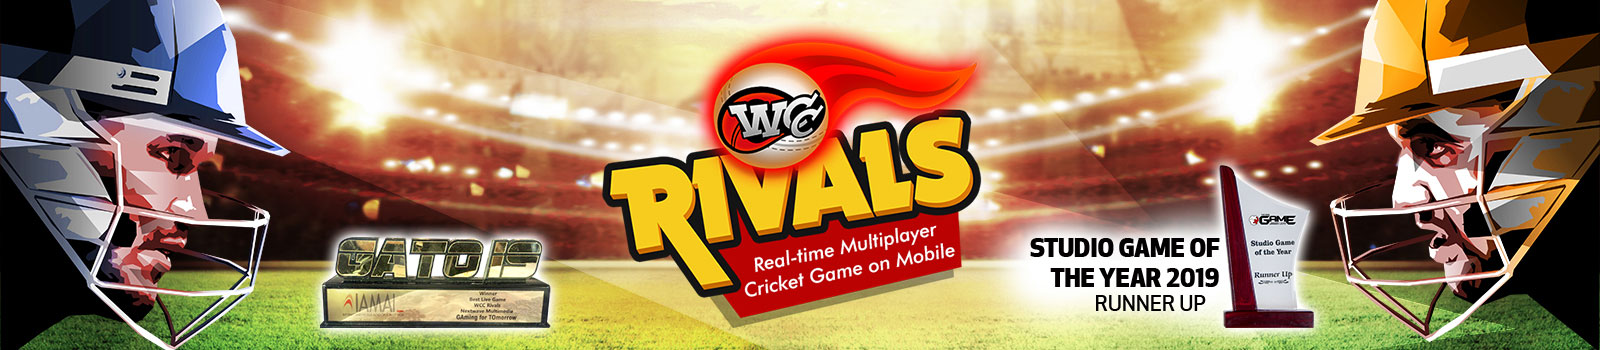 WCC Rivals is the first full featured multiplayer cricket game on mobile